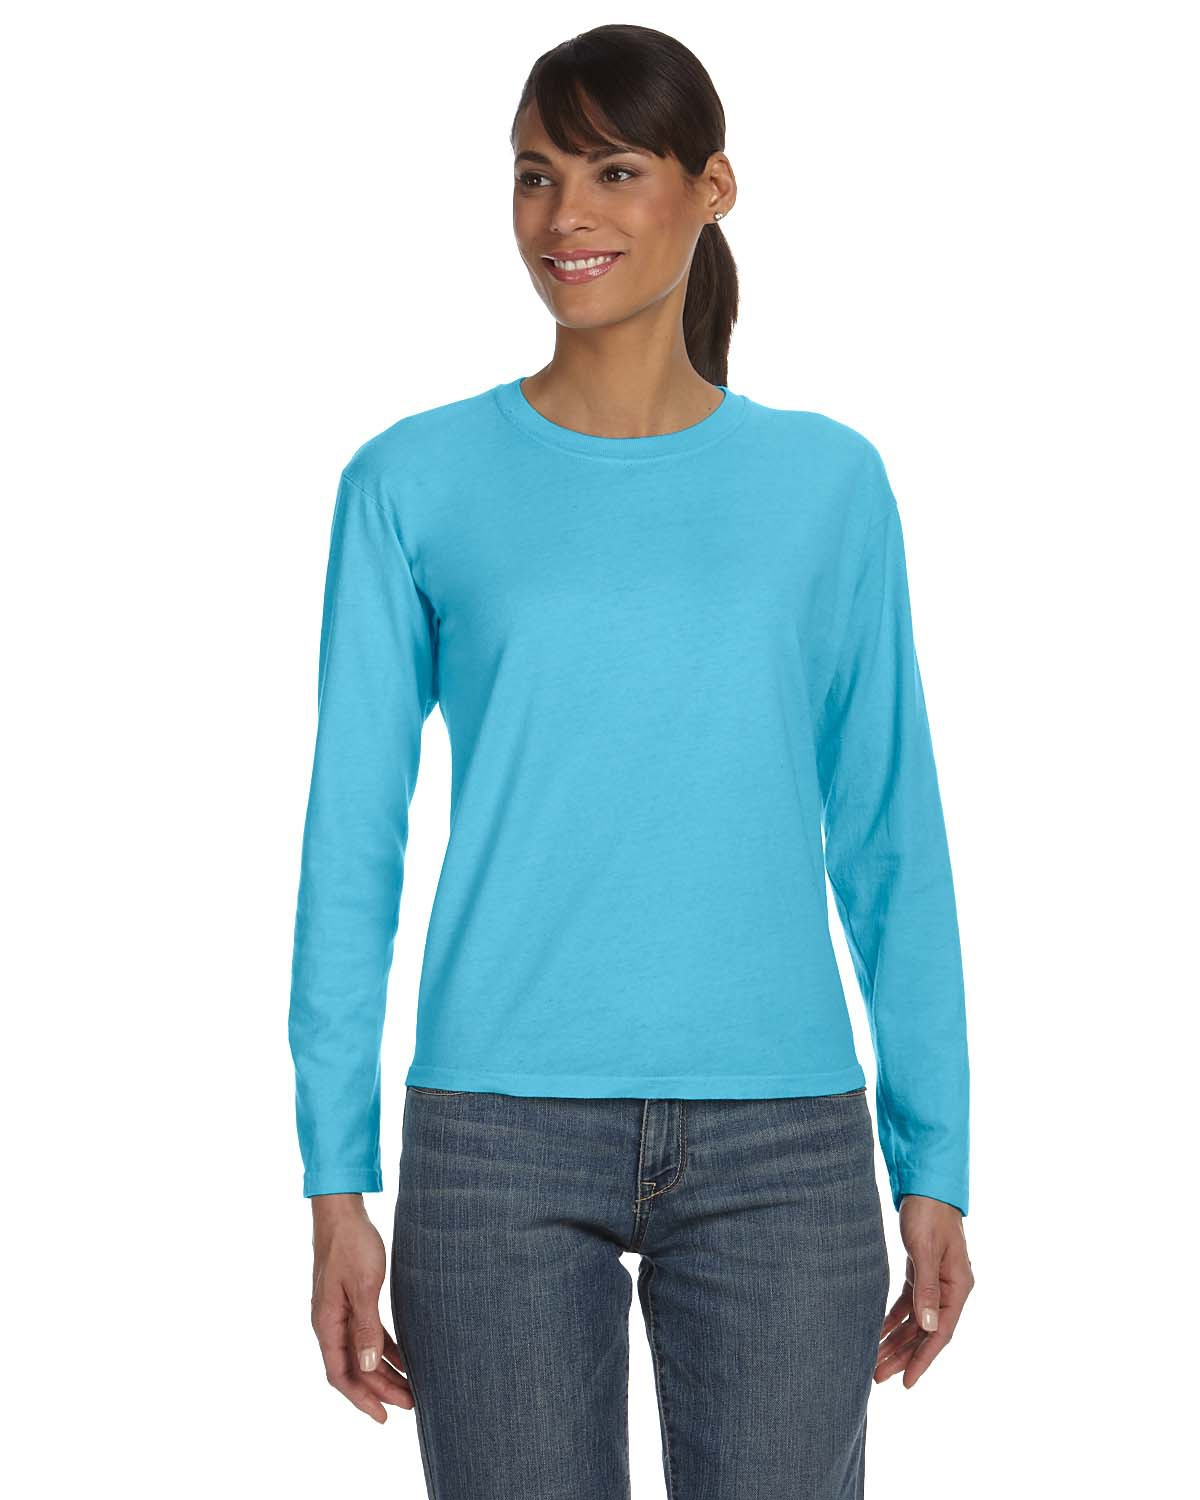 Comfort Colors 3014 - Women's Garment Dyed Ringspun ...